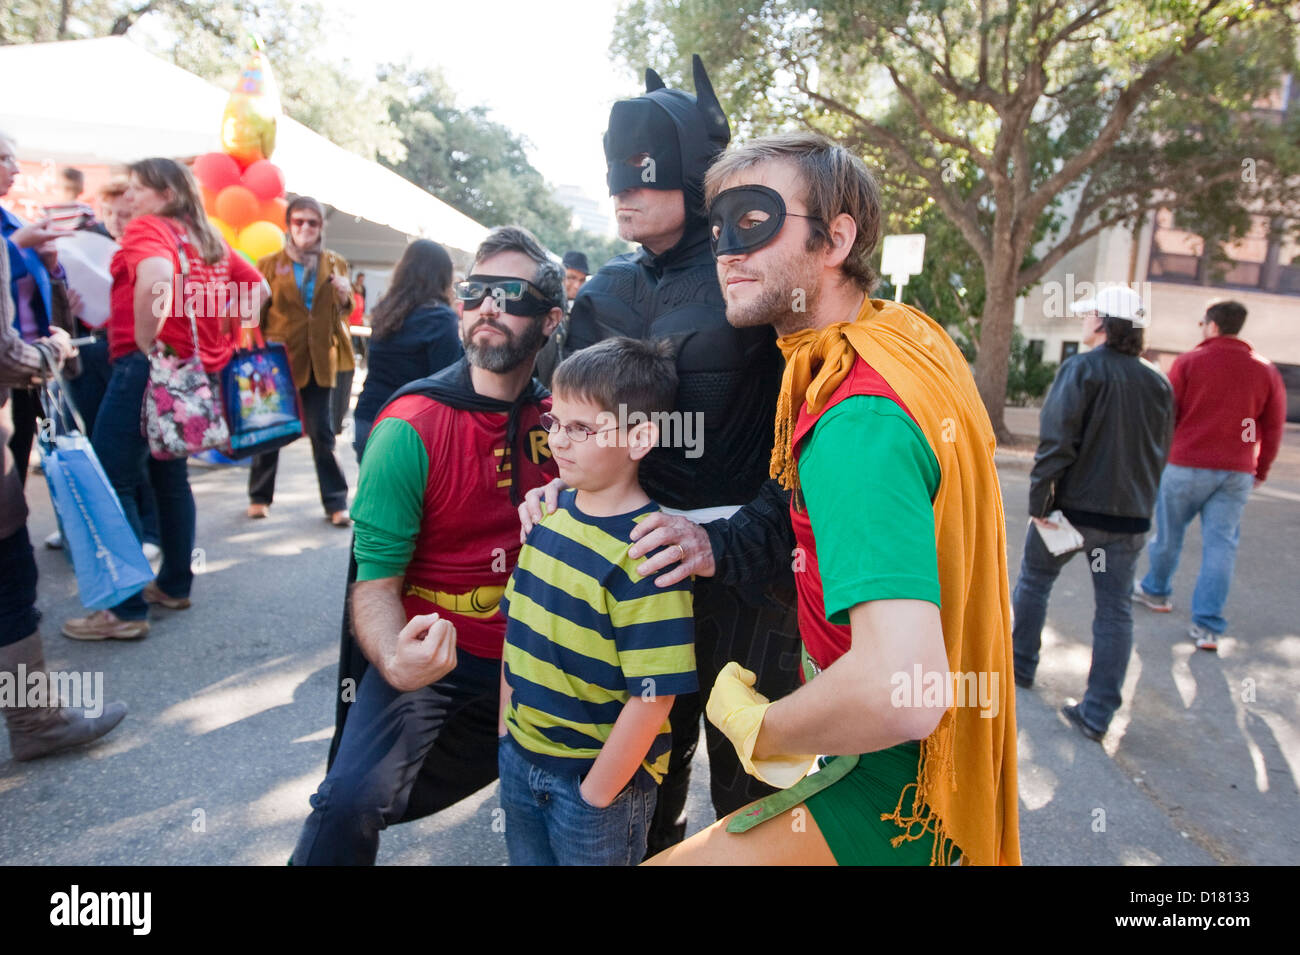 Young boy poses with several children's book authors dressed up in super hero costumes including Batman, Robin - Stock Image